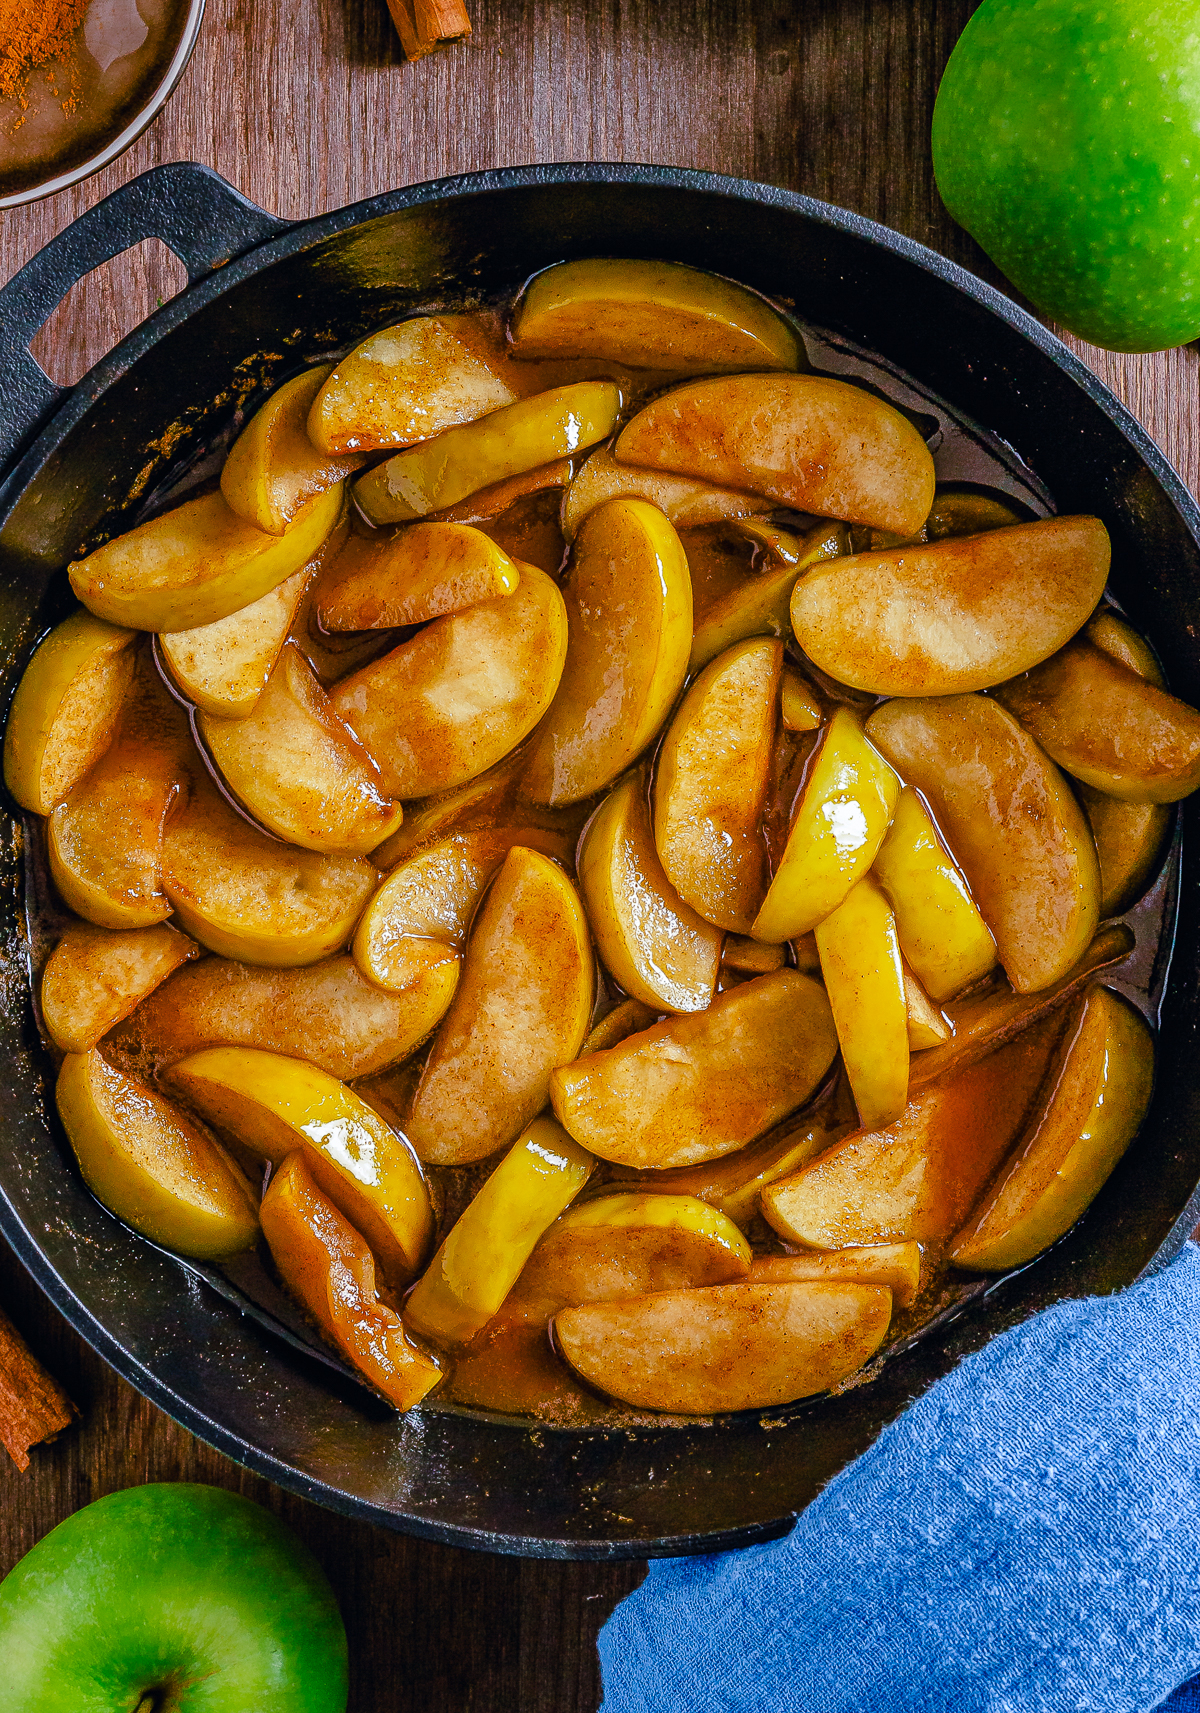 Overhead photo of Fried Apples in cast iron skillet with apples on sides.